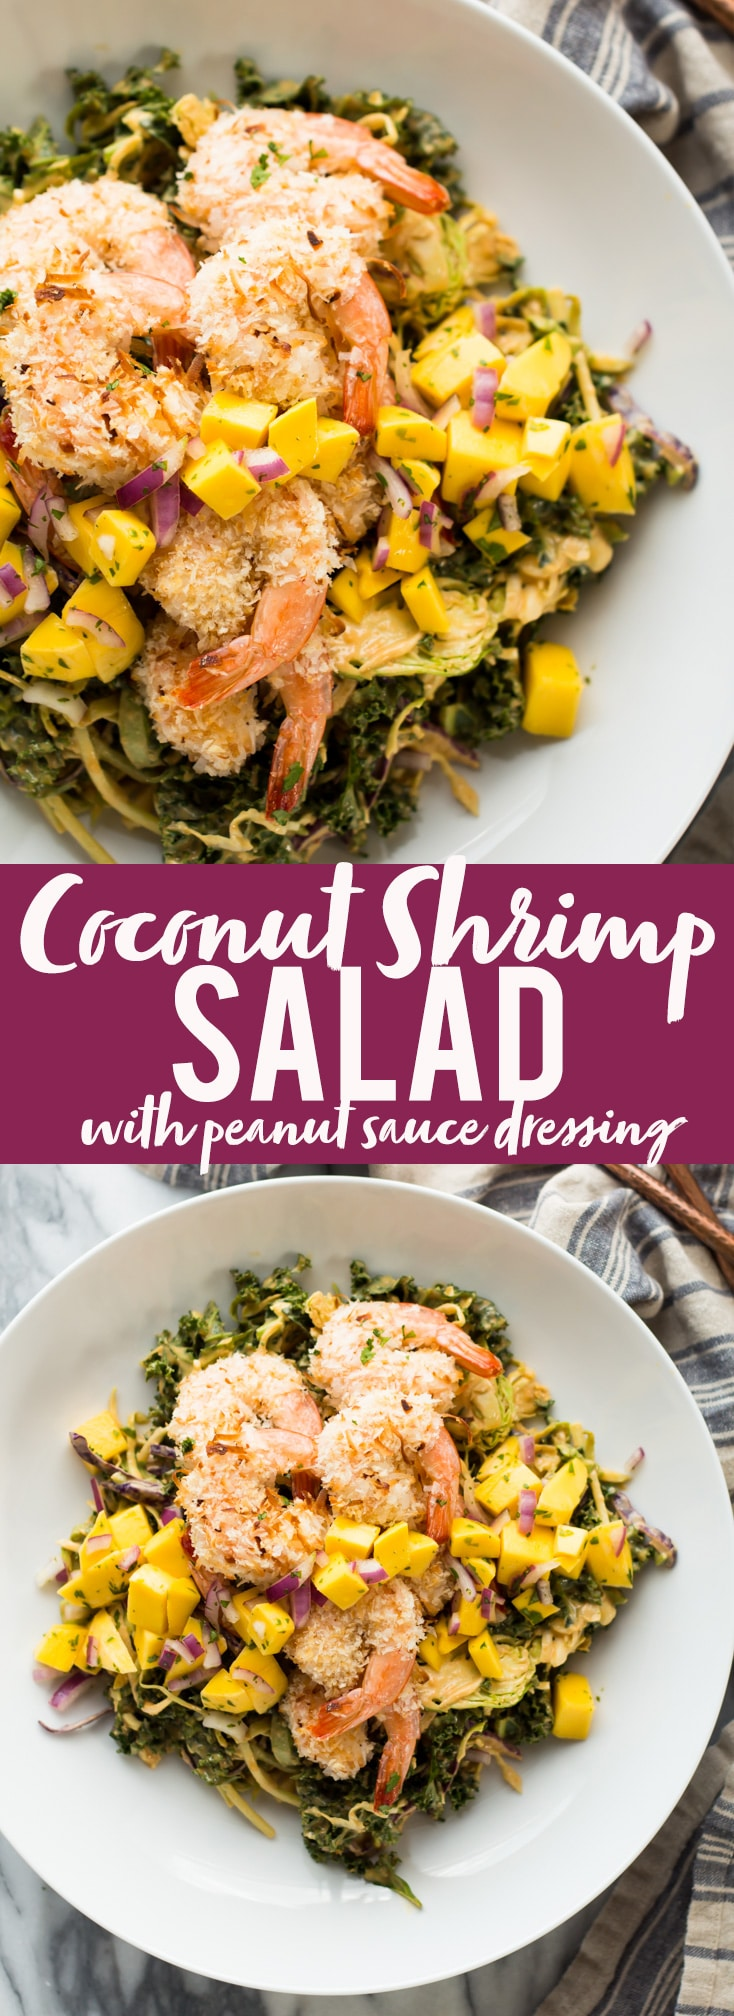 This delicious and tropical Coconut Shrimp Salad is topped with a fresh mango salsa and the most addictive peanut sauce dressing ever!